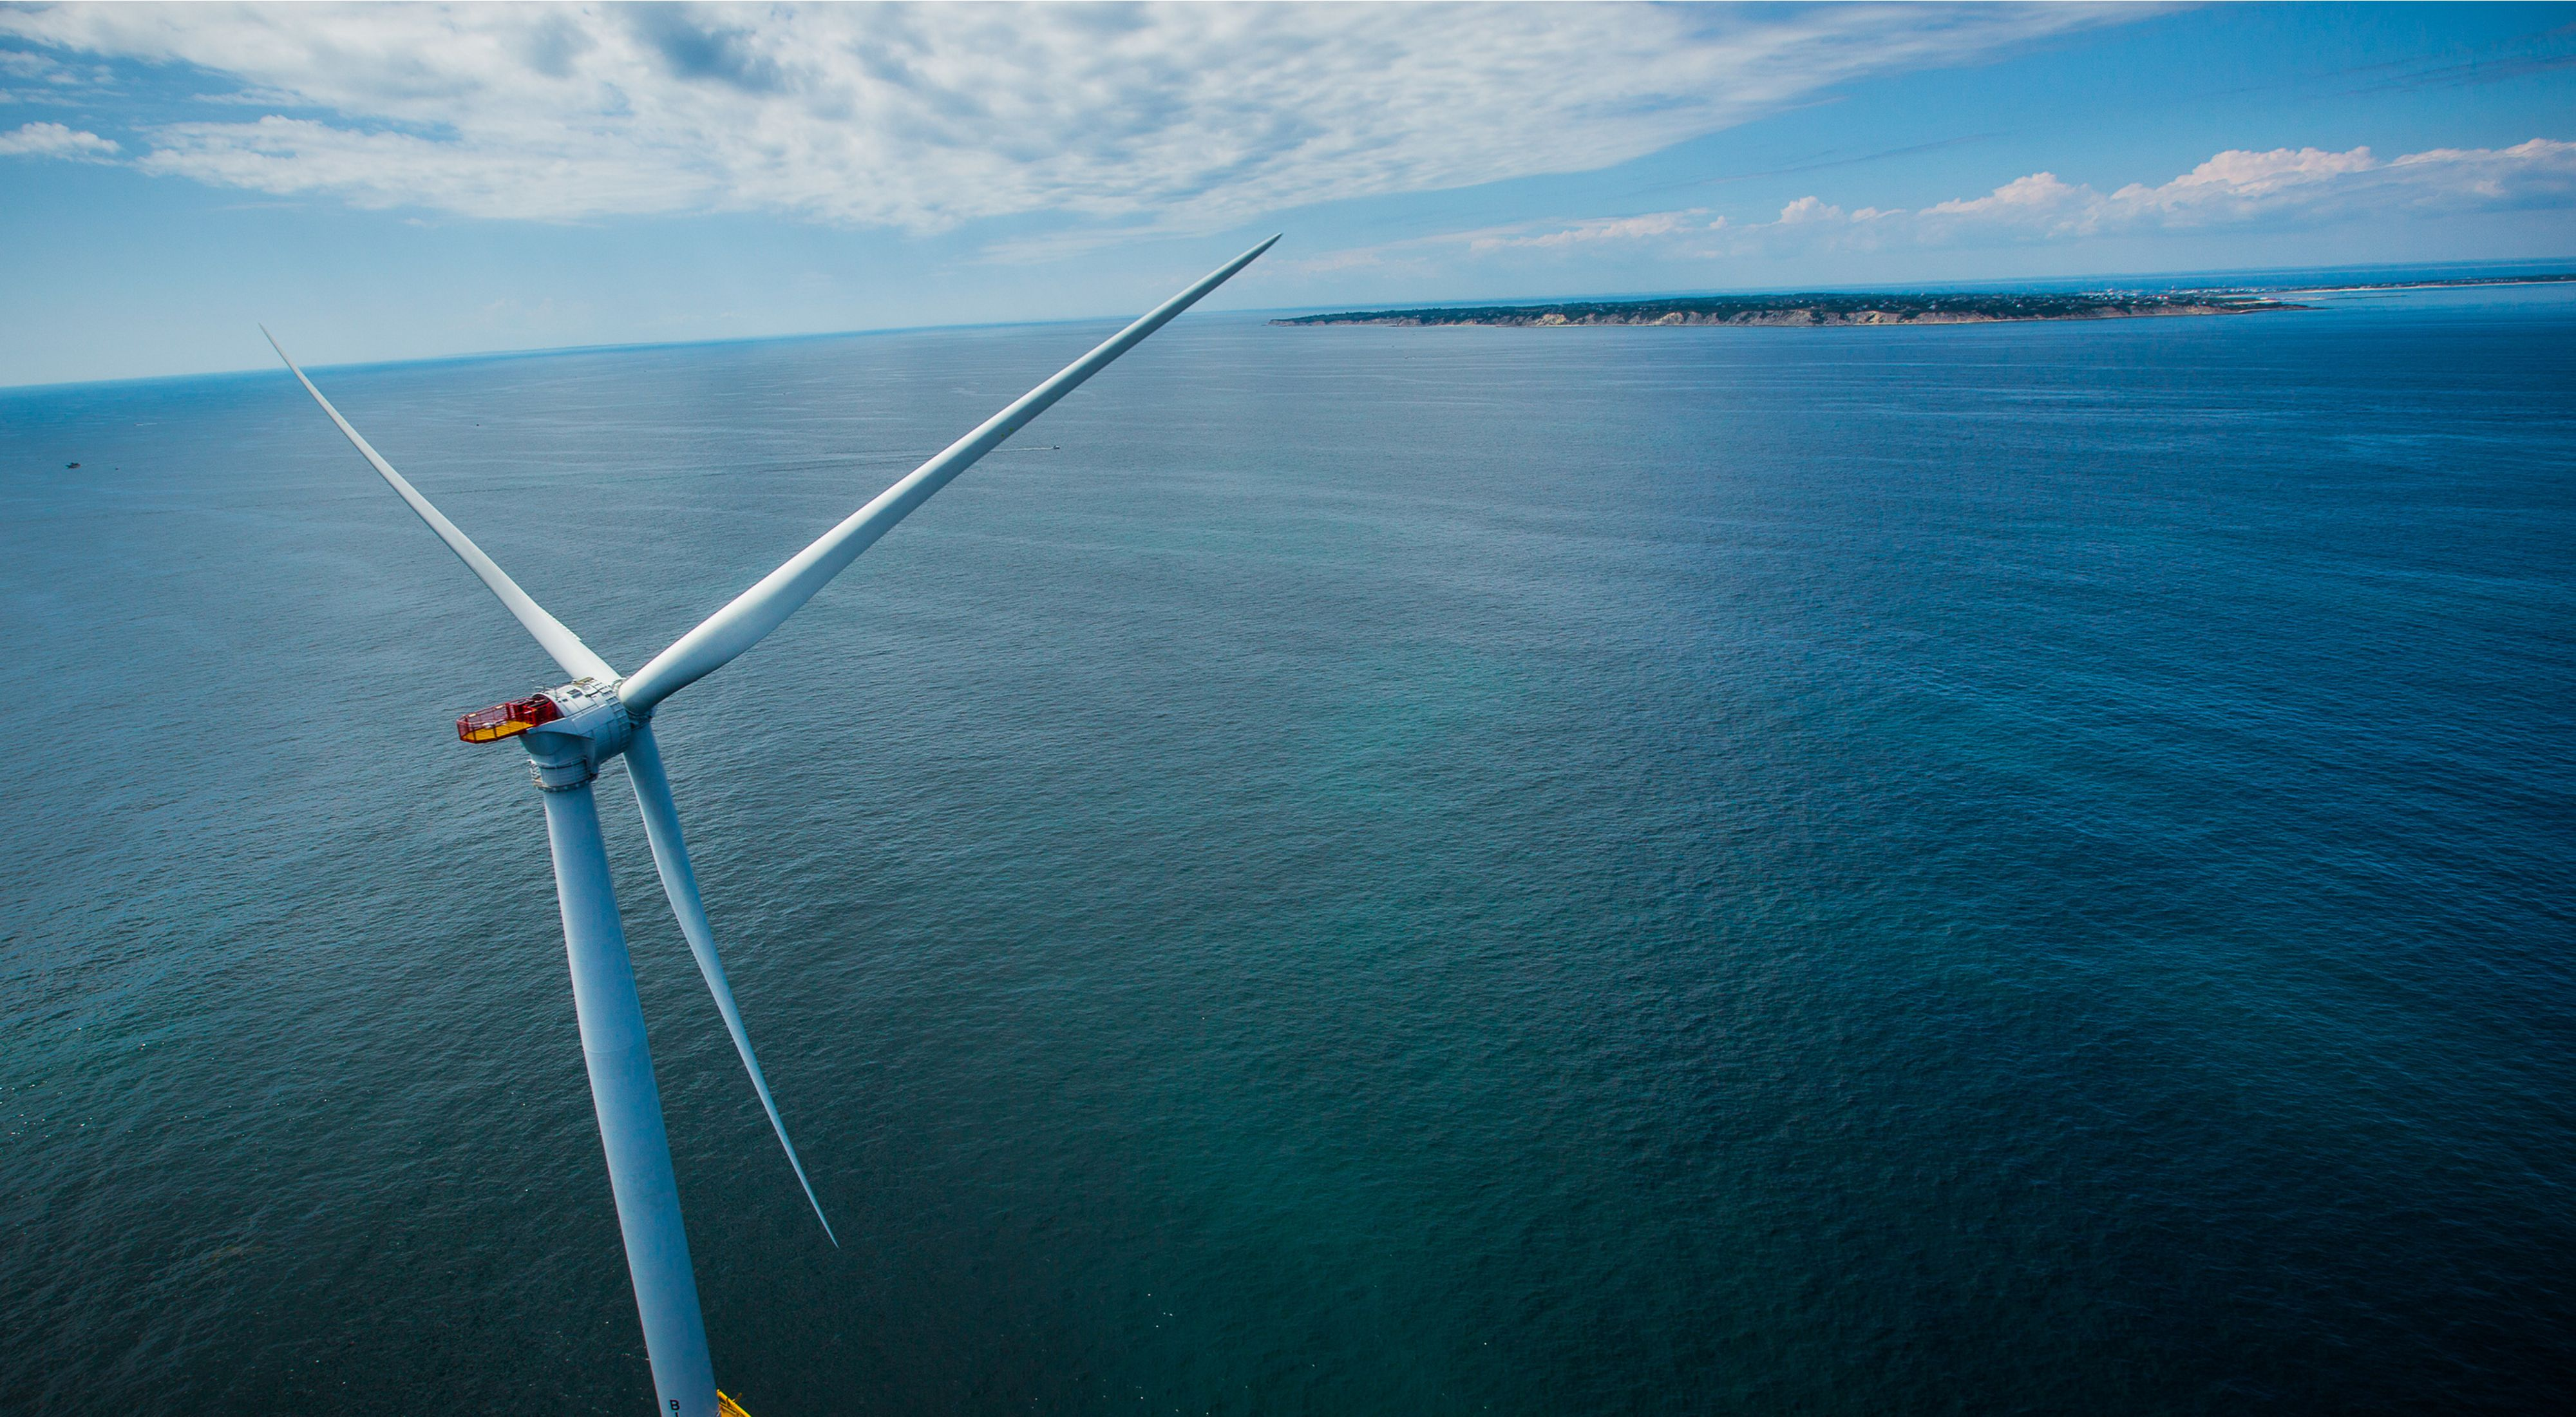 Aerial view of a white wind turbine rising from the ocean, with a small island in the distance.